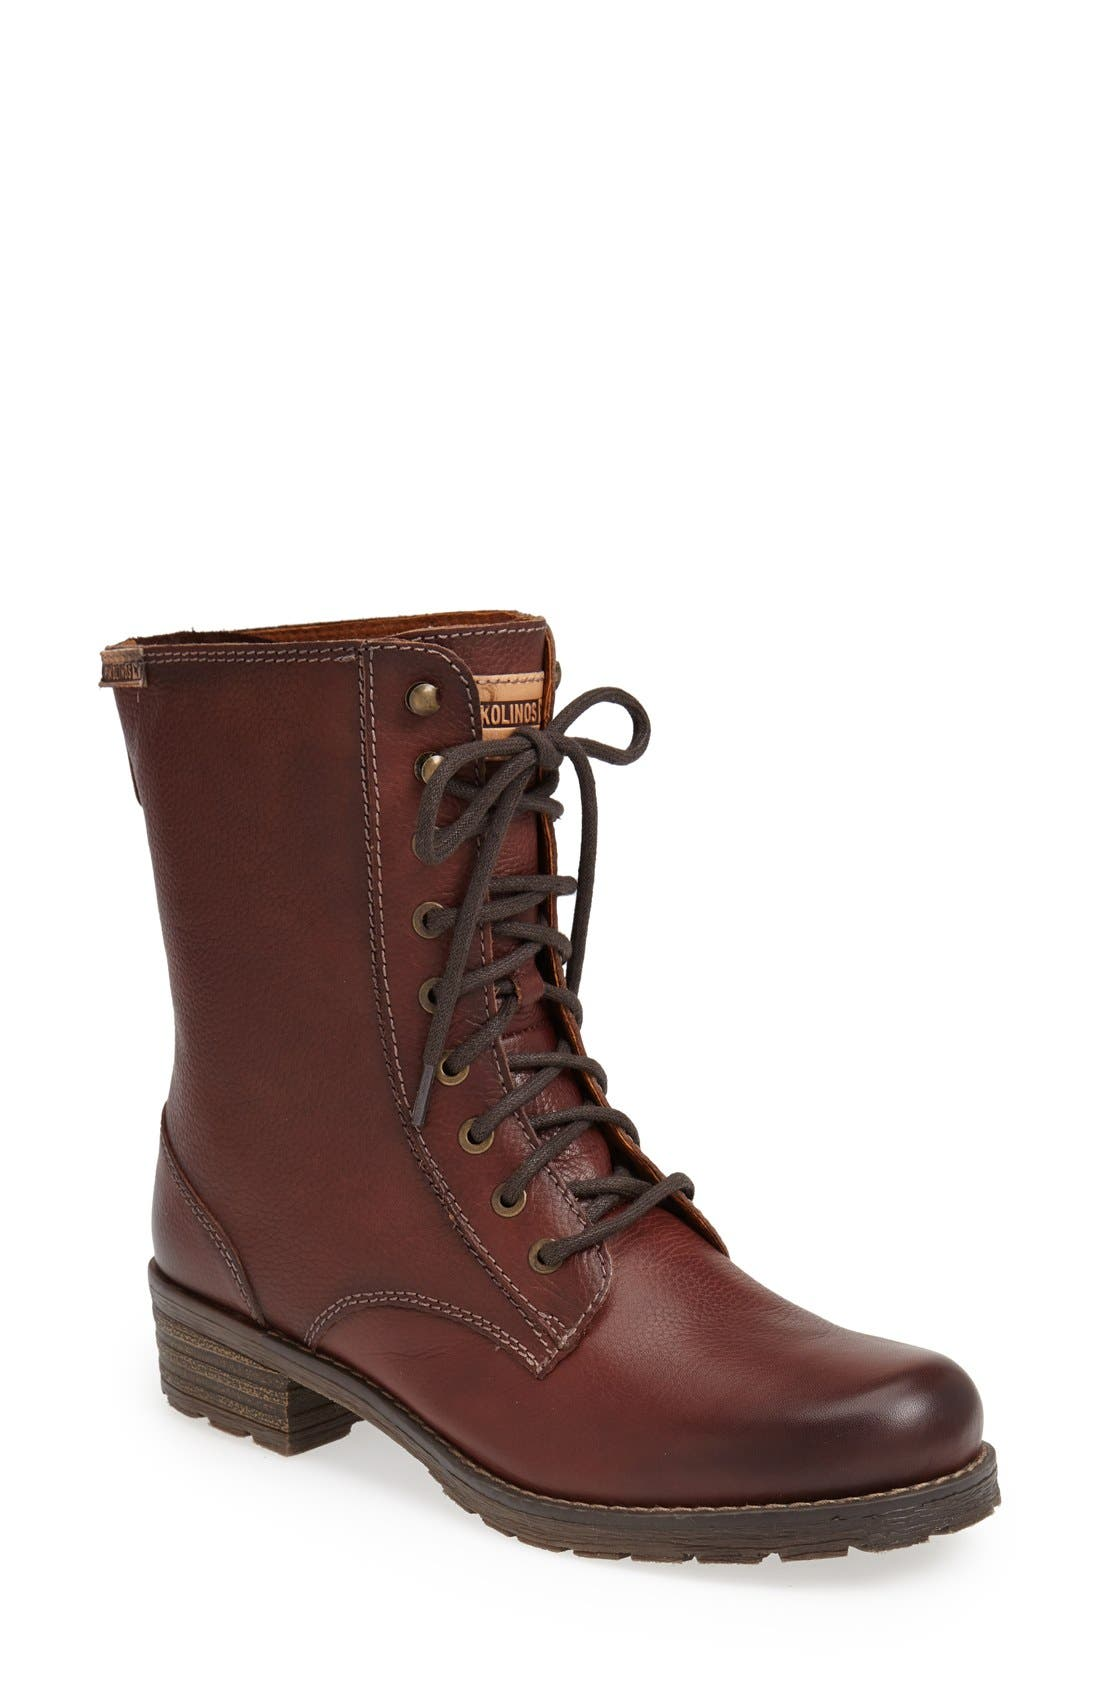 Main Image - PIKOLINOS 'Monza' Lace-Up Boot (Women)